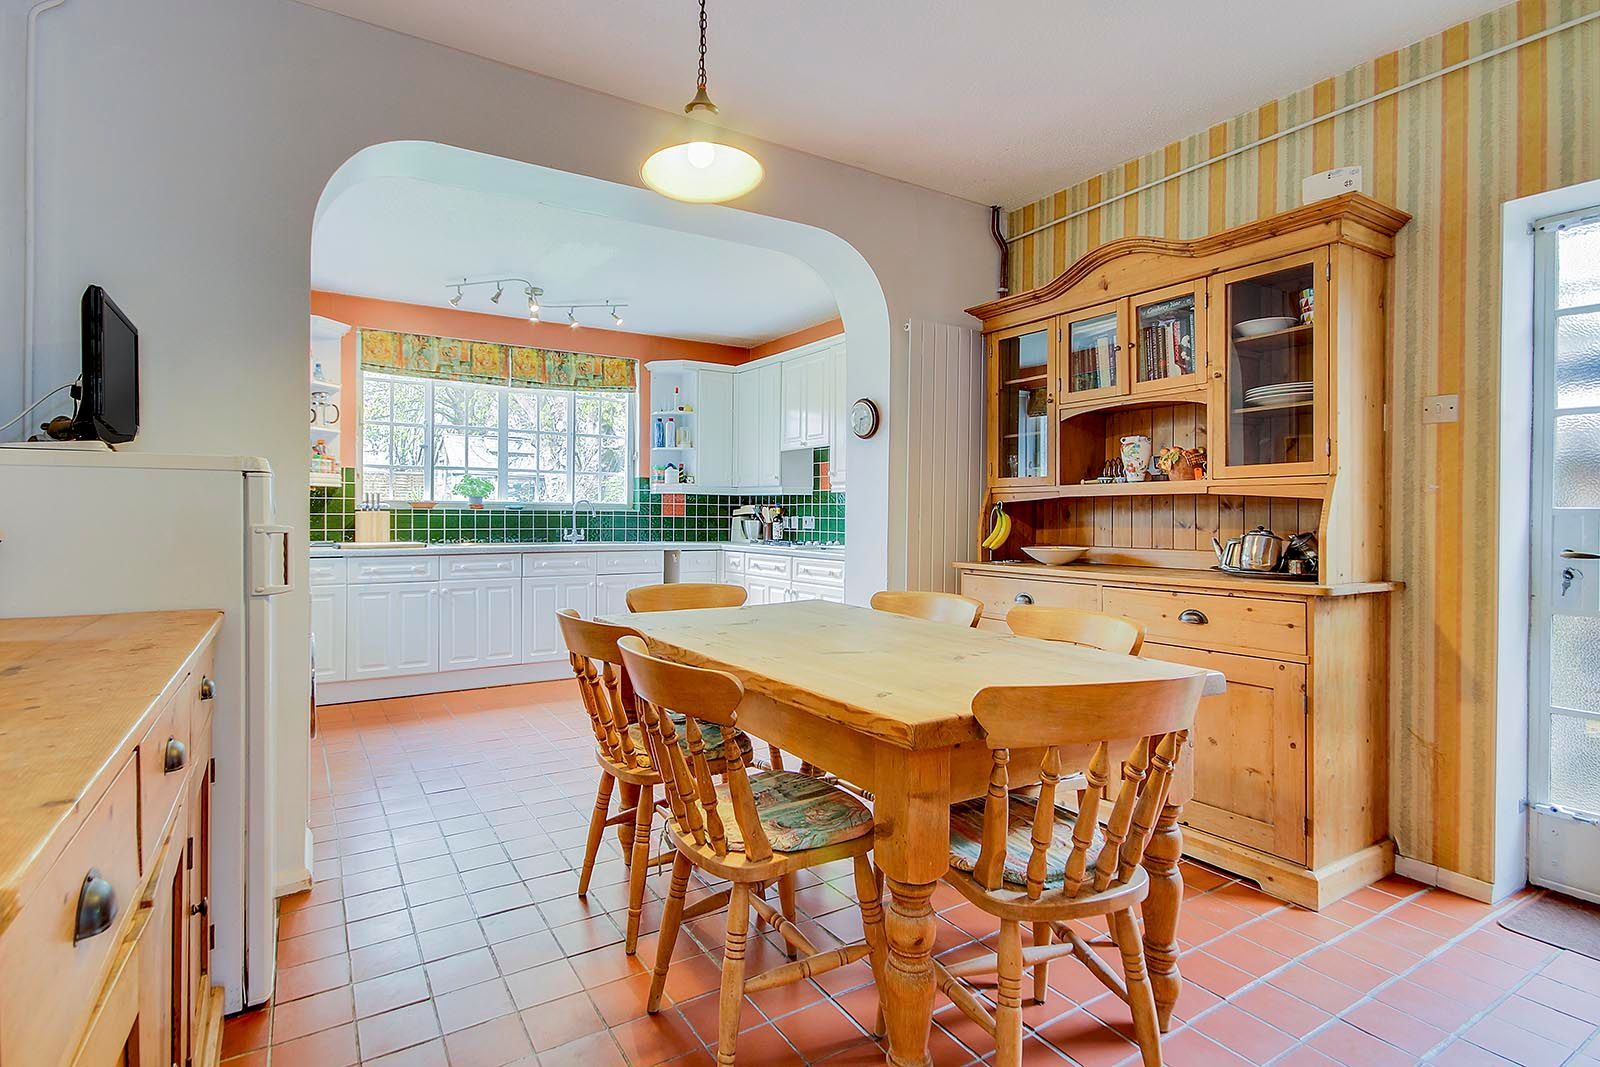 4 bed house for sale in Mill Road (COMP AUG 19) 6